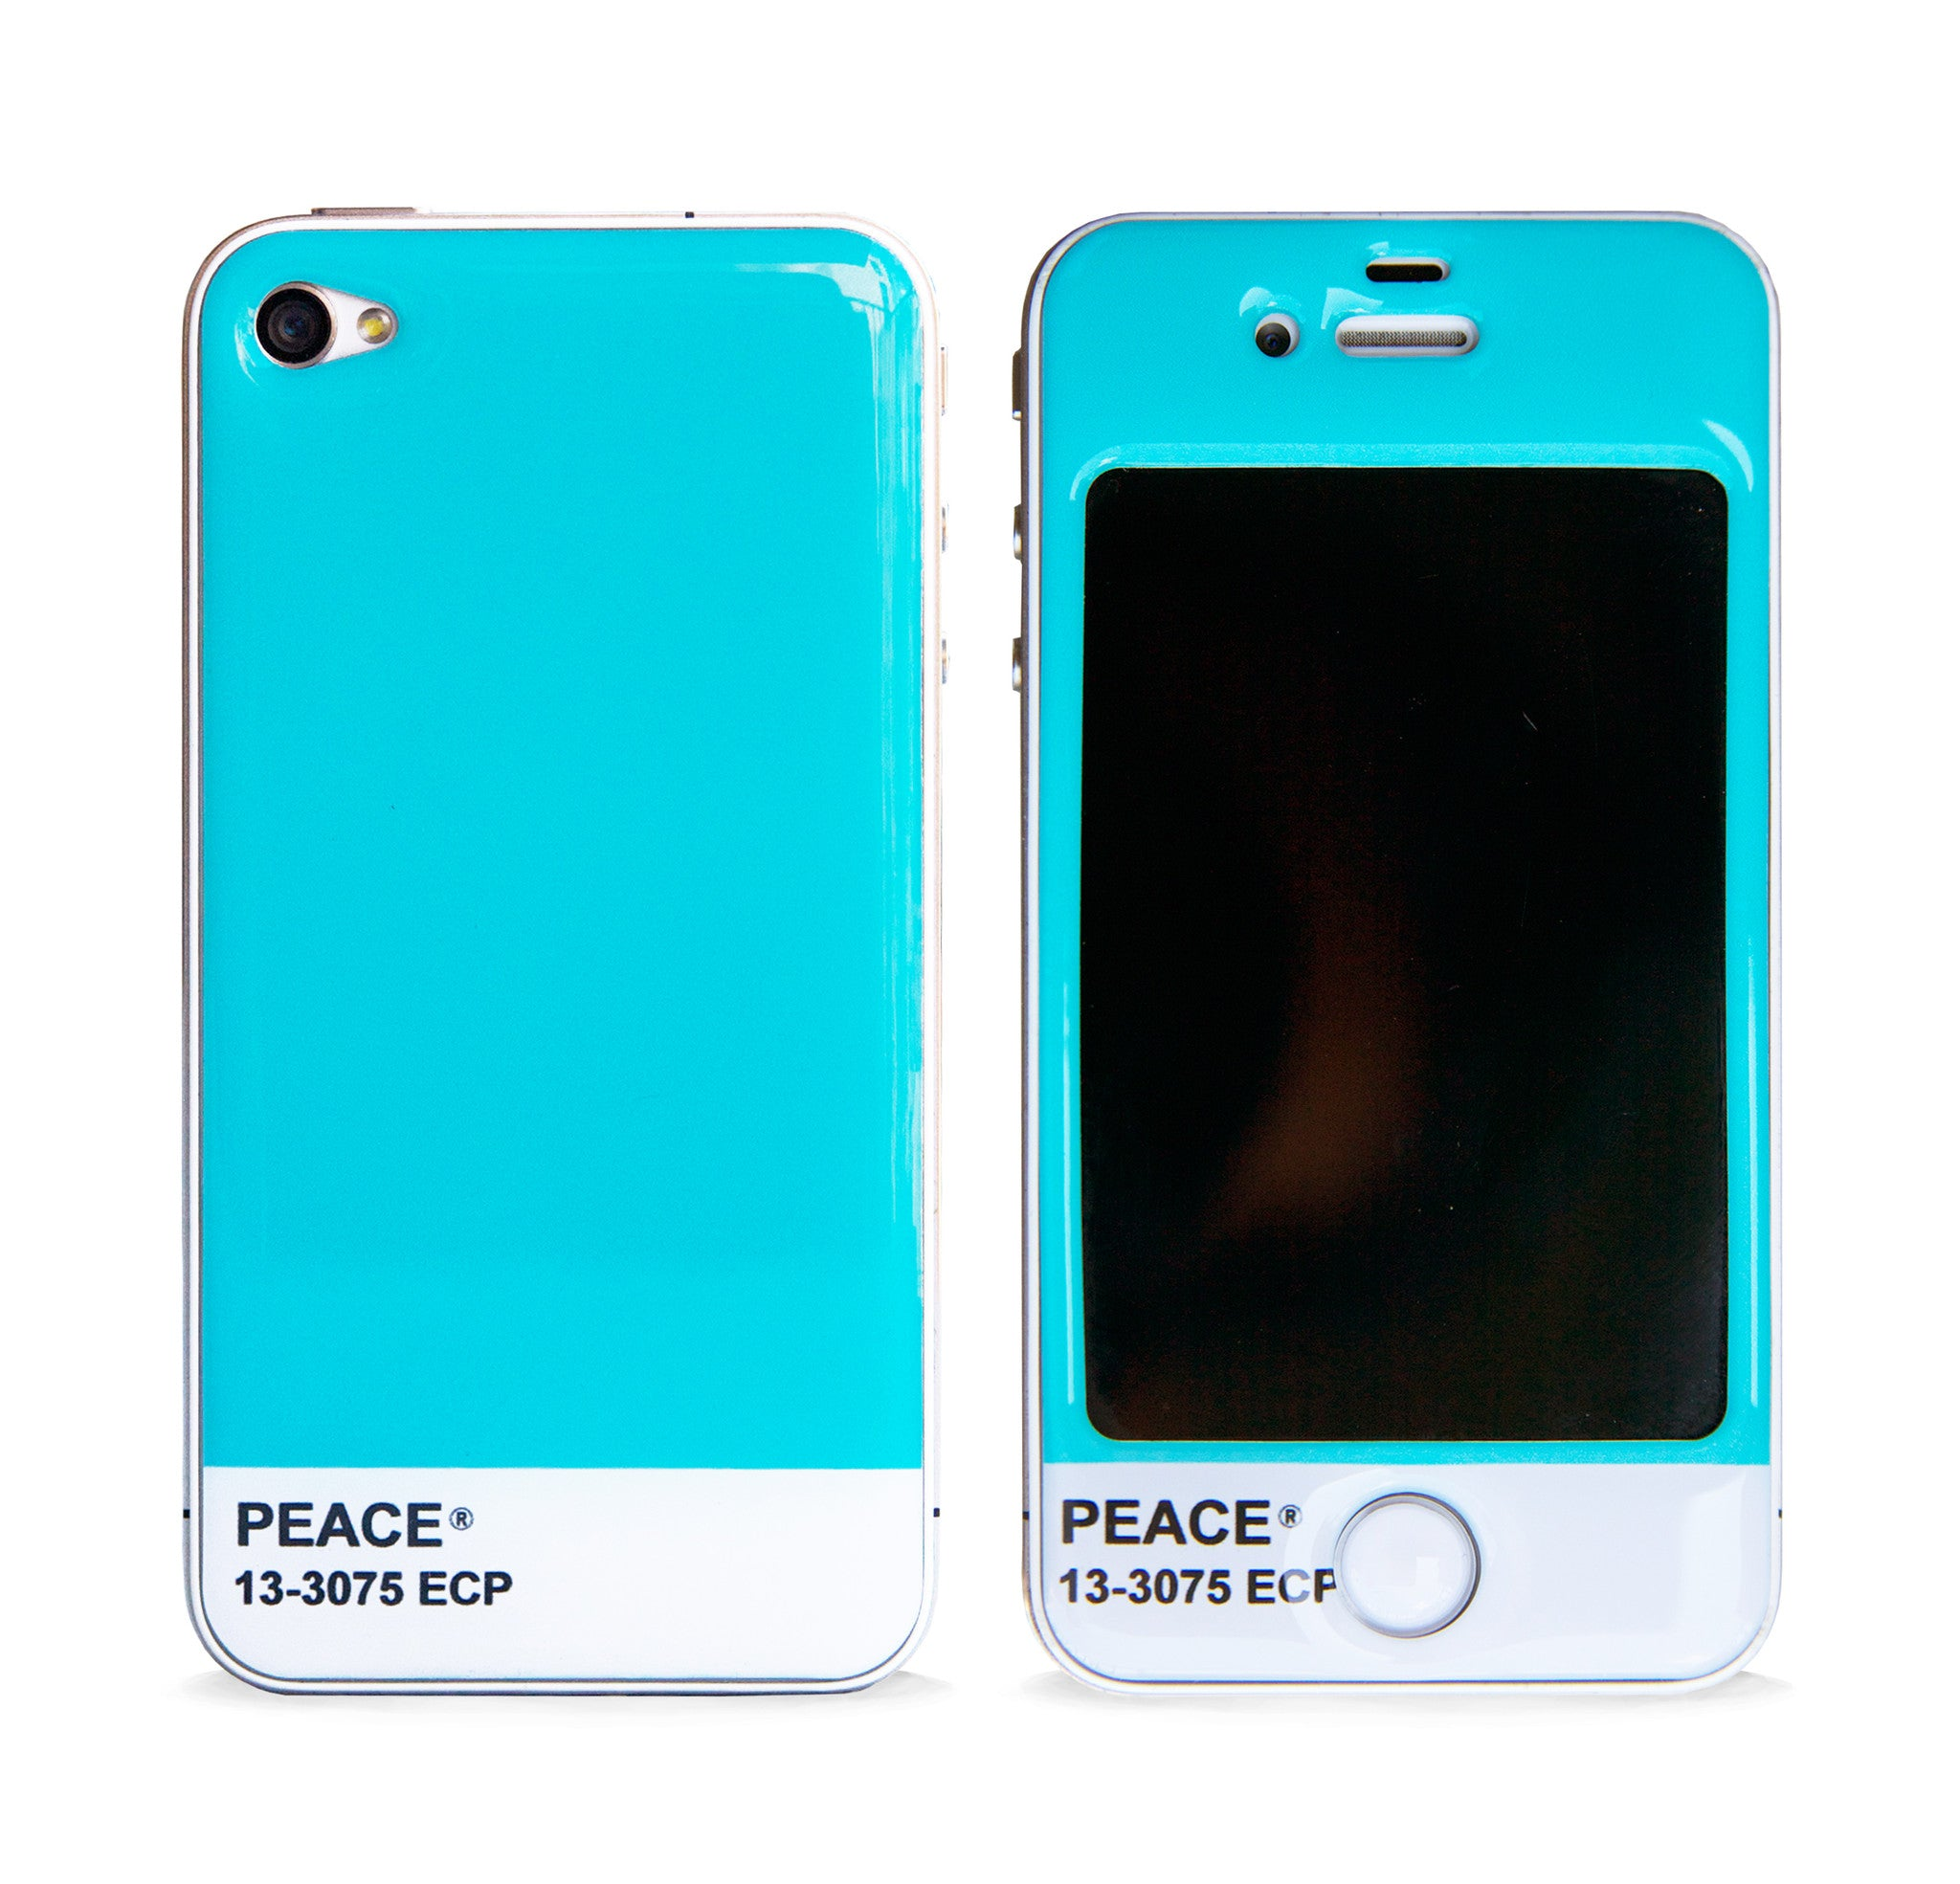 COLOR TONE MINT 3D GEL SKIN FOR IPHONE 4/4S